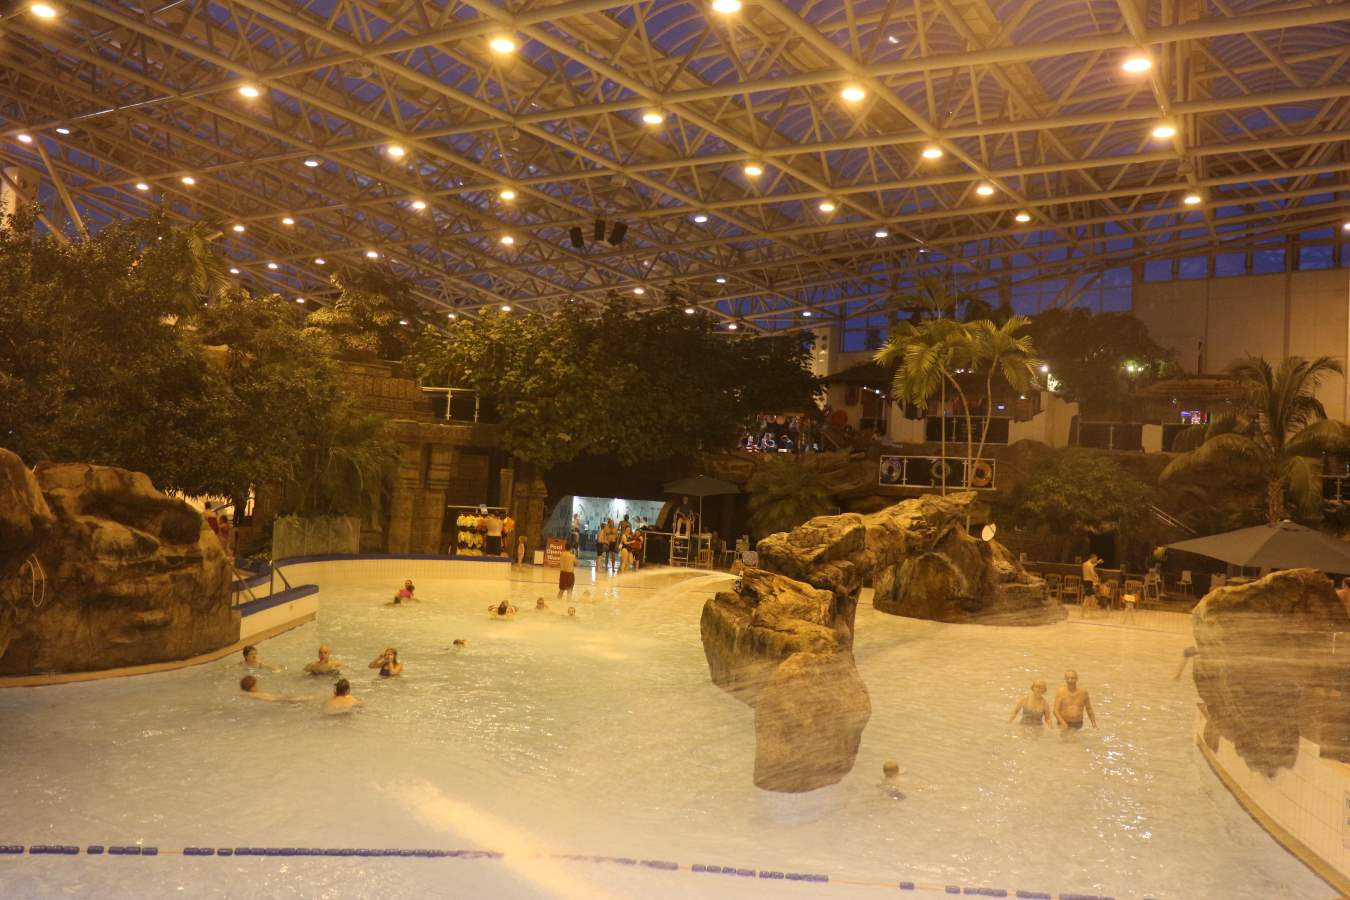 Gallery Center Parcs Whinfell Forest Visit Cumbria